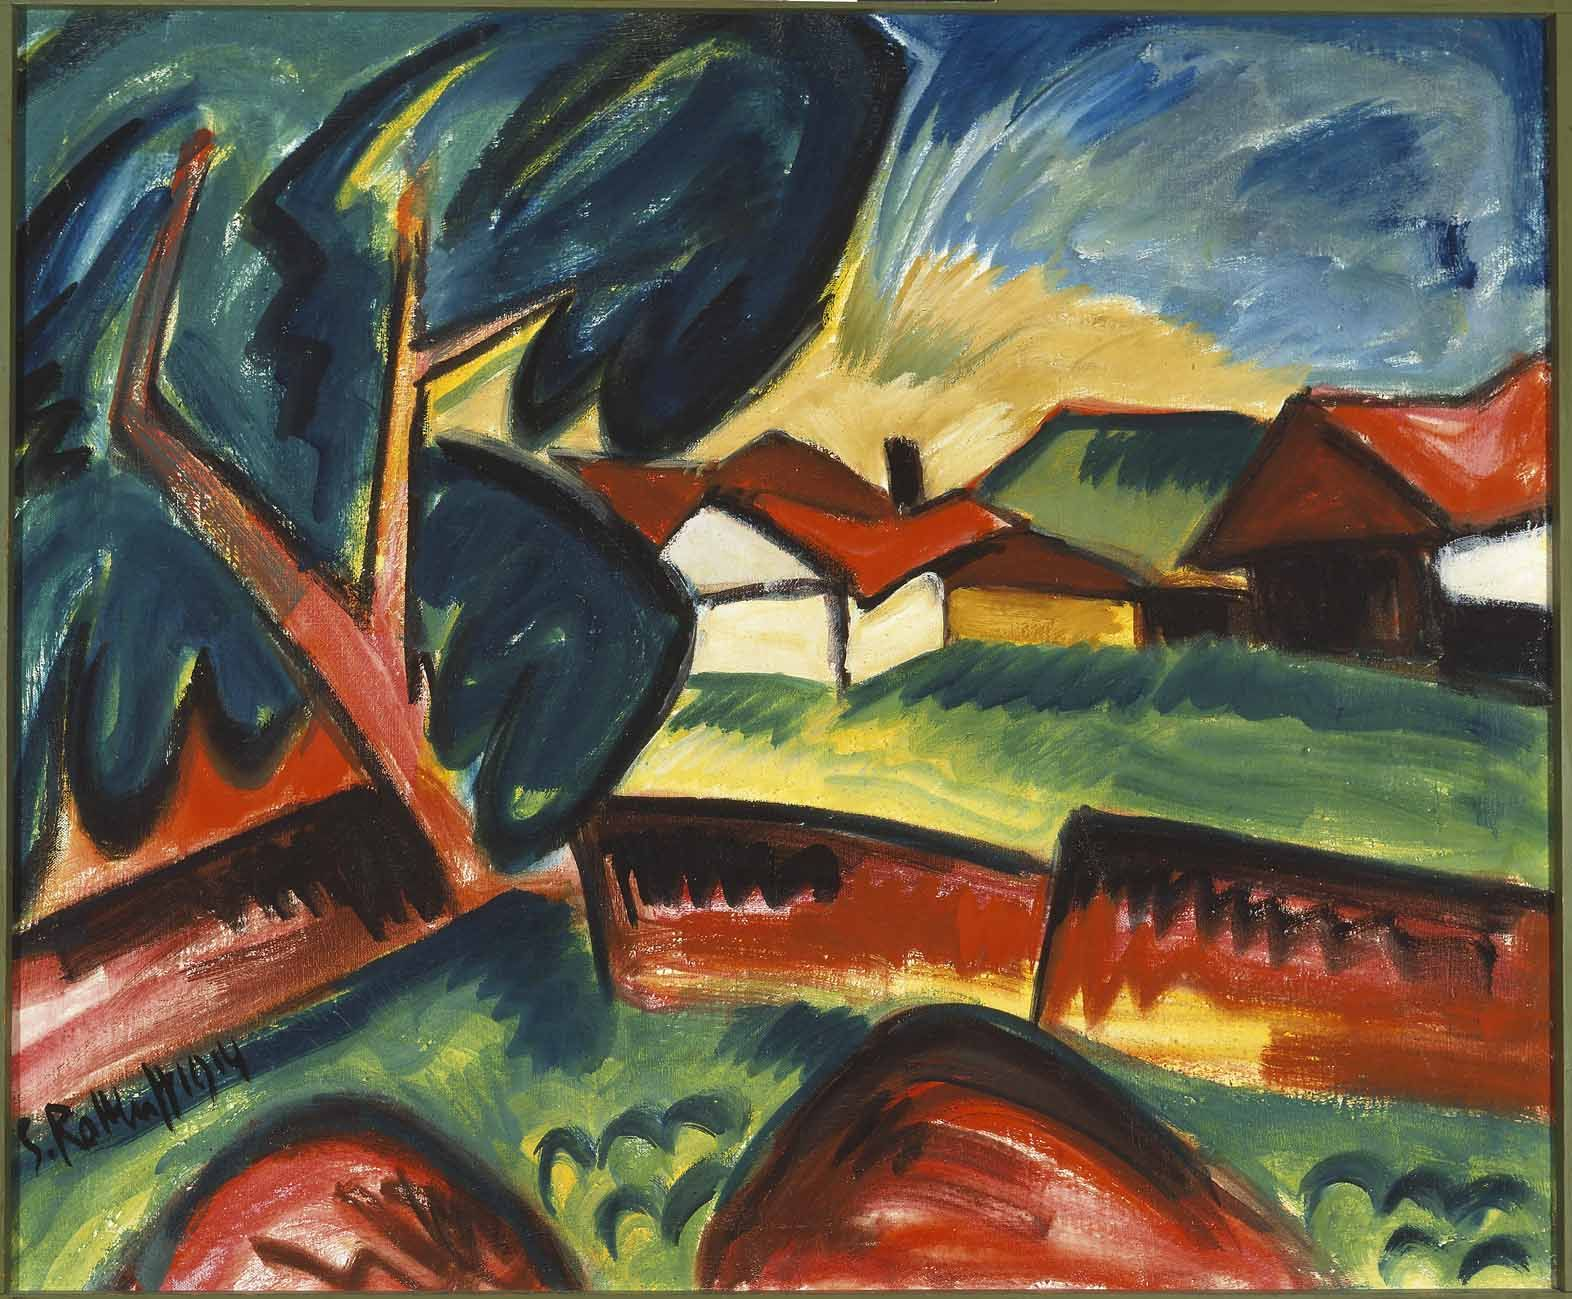 Karl Schmidt-Rottluff (1884–1976), Gehöft, 1914, oil on canvas, 77.5 x 91 cm / 30.5 x 35.8 in.